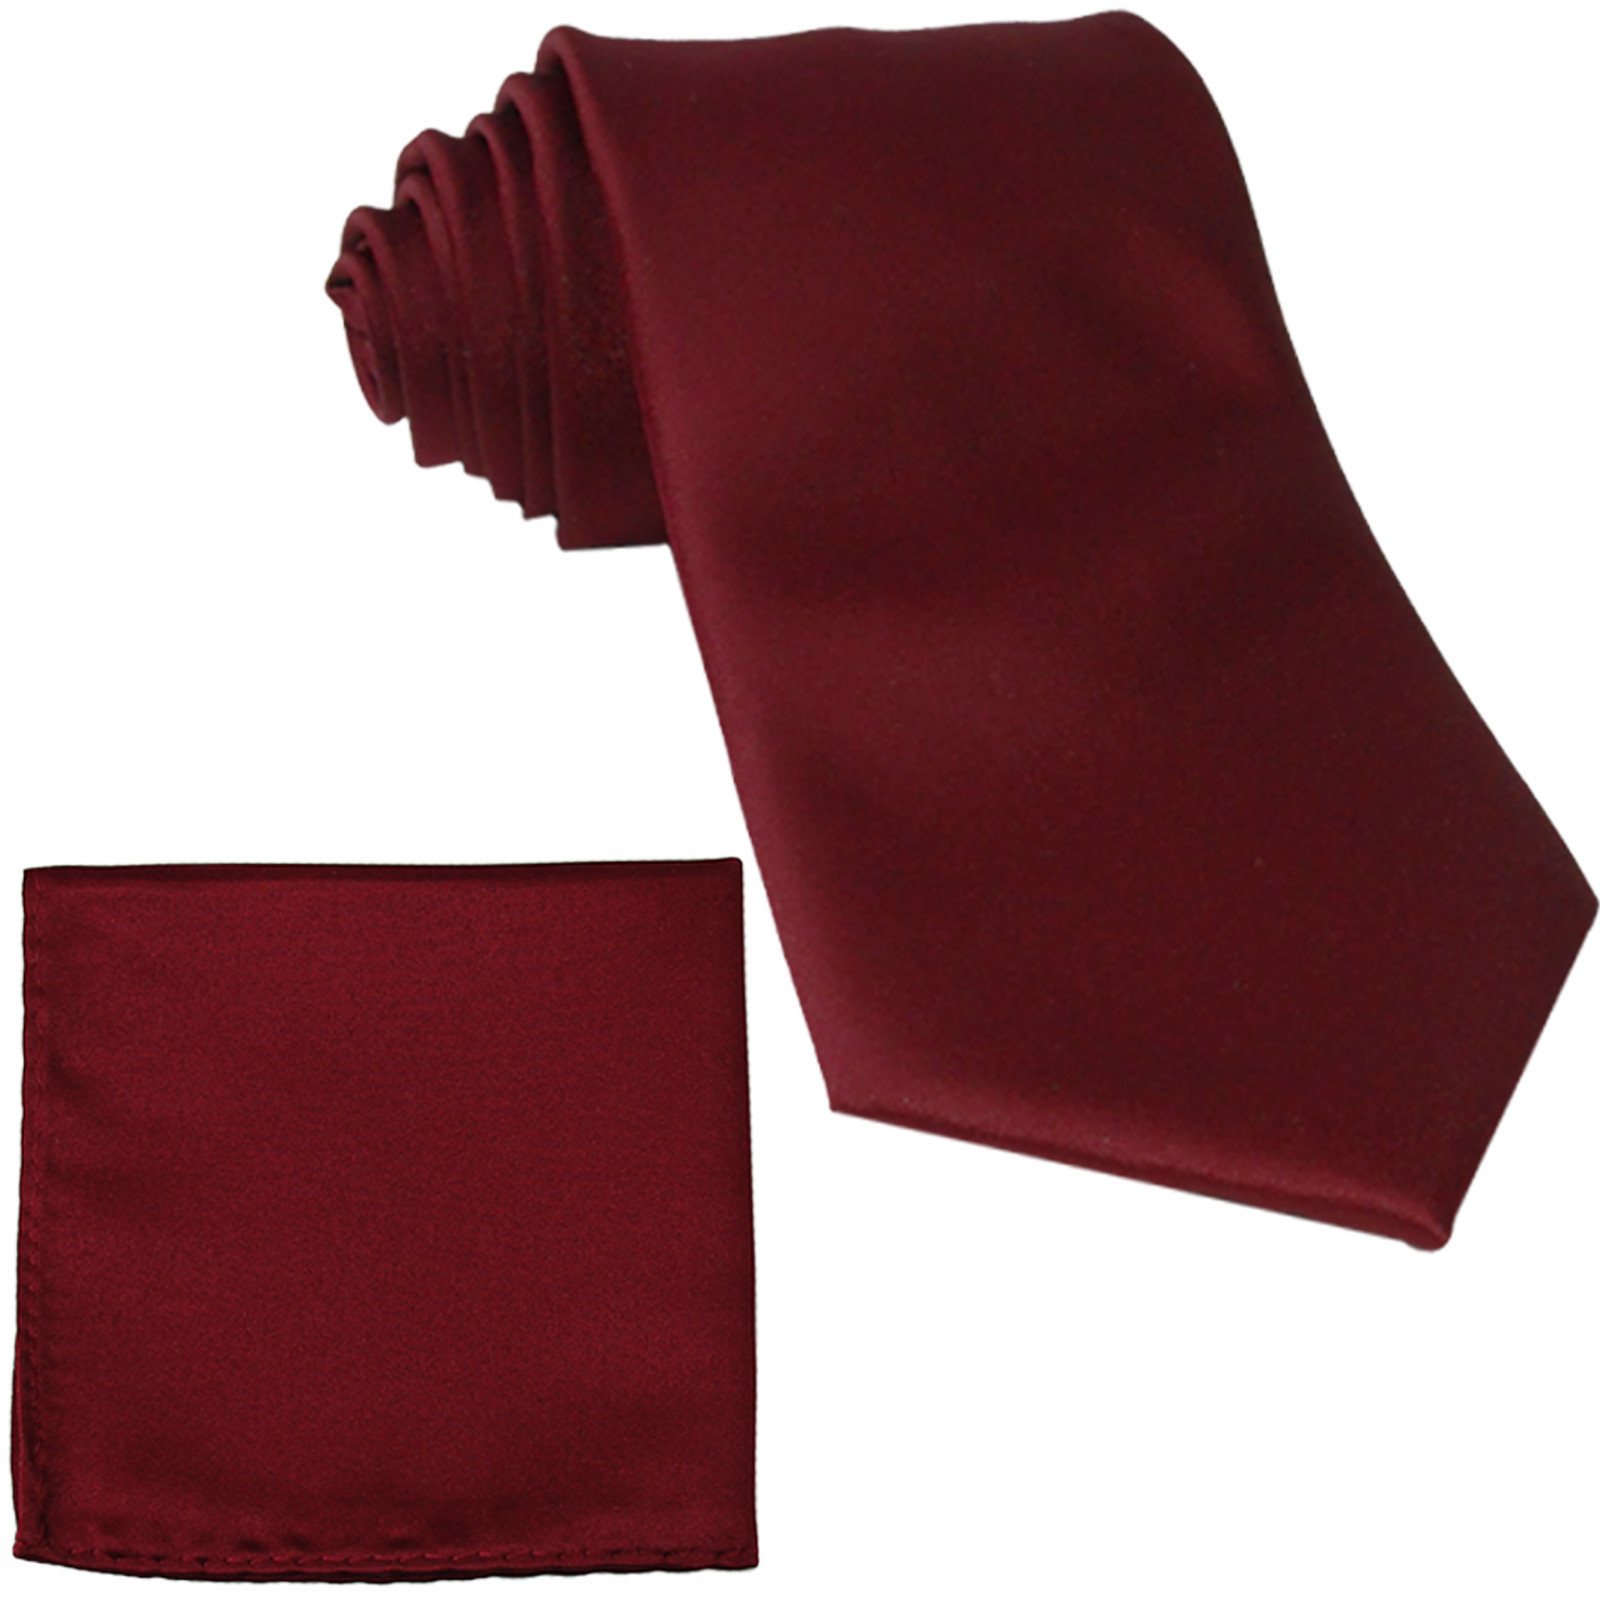 New Polyester Men's Neck Tie & hankie solid formal prom uniform  Burgundy